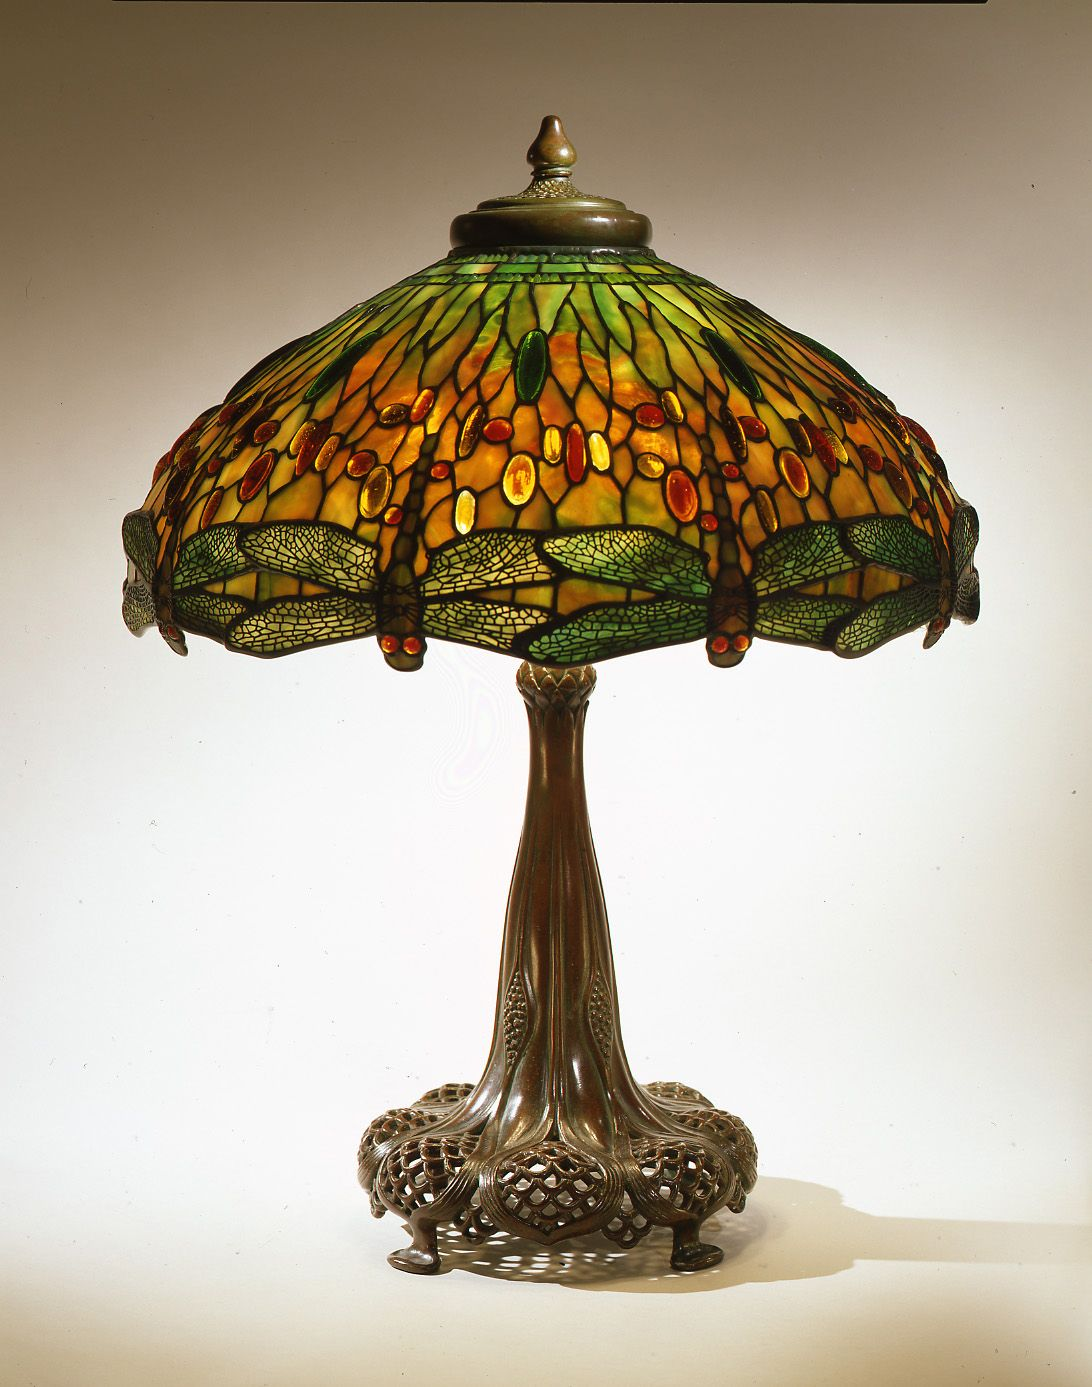 Antique tiffany table lamps - Tiffany Style Table Lamps For Indoor And Outdoor Lighting Classic Crystal Table Lamps